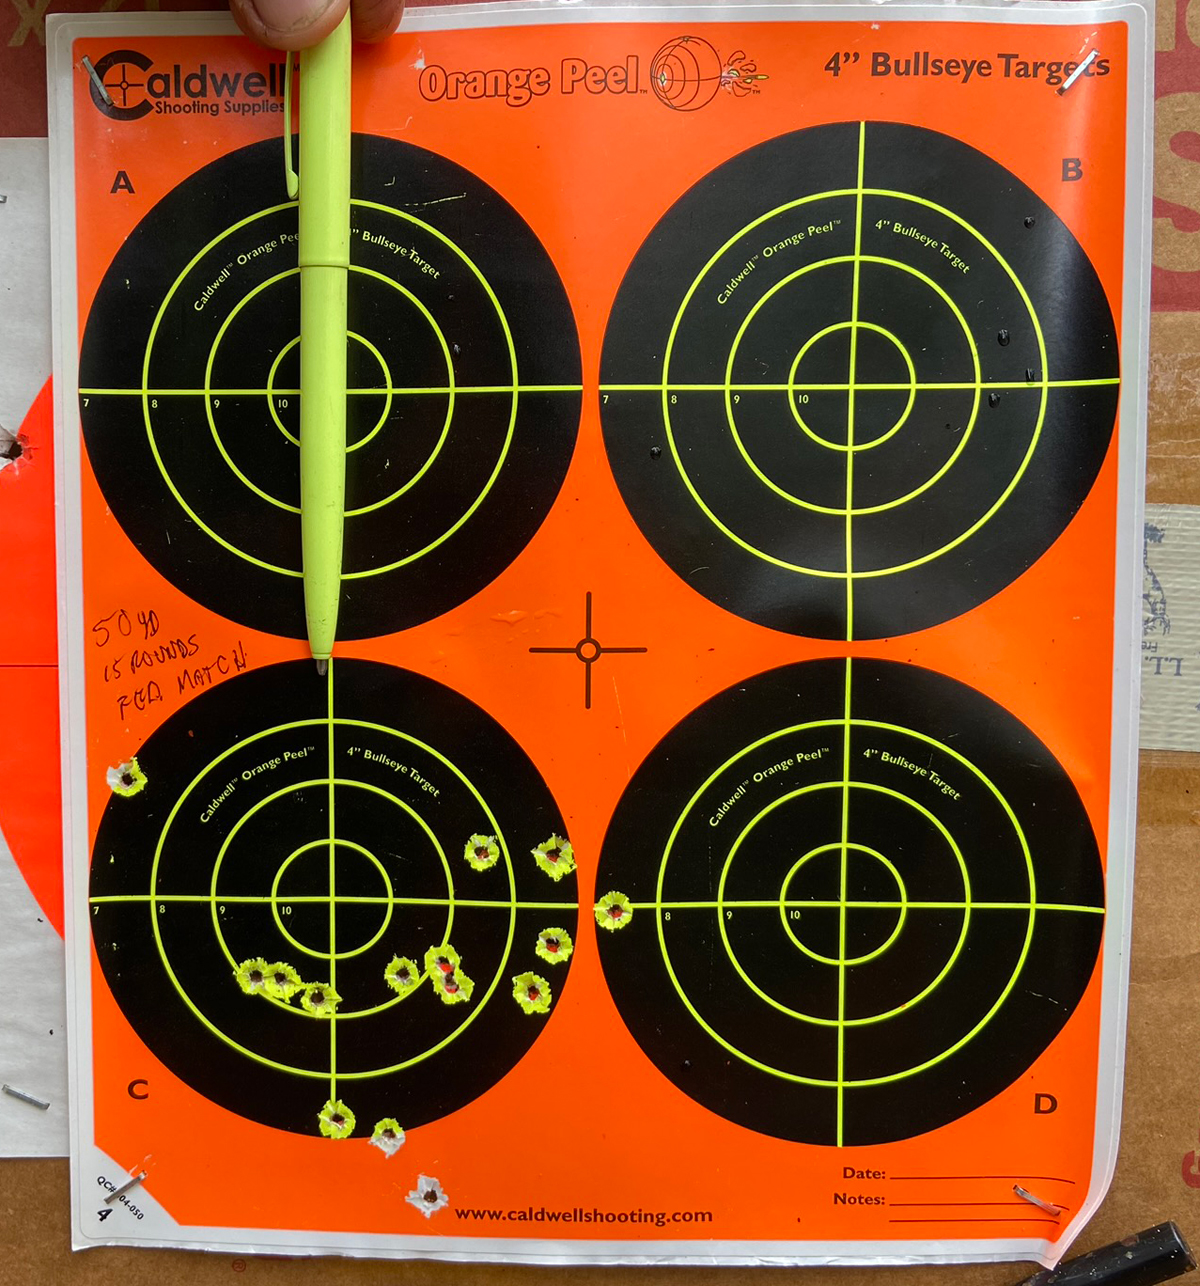 15 rounds at 50 yards with a peep sight in direct sunlight... this is not bad at all. Pen point indicates point of aim. (Photo © Russ Chastain)